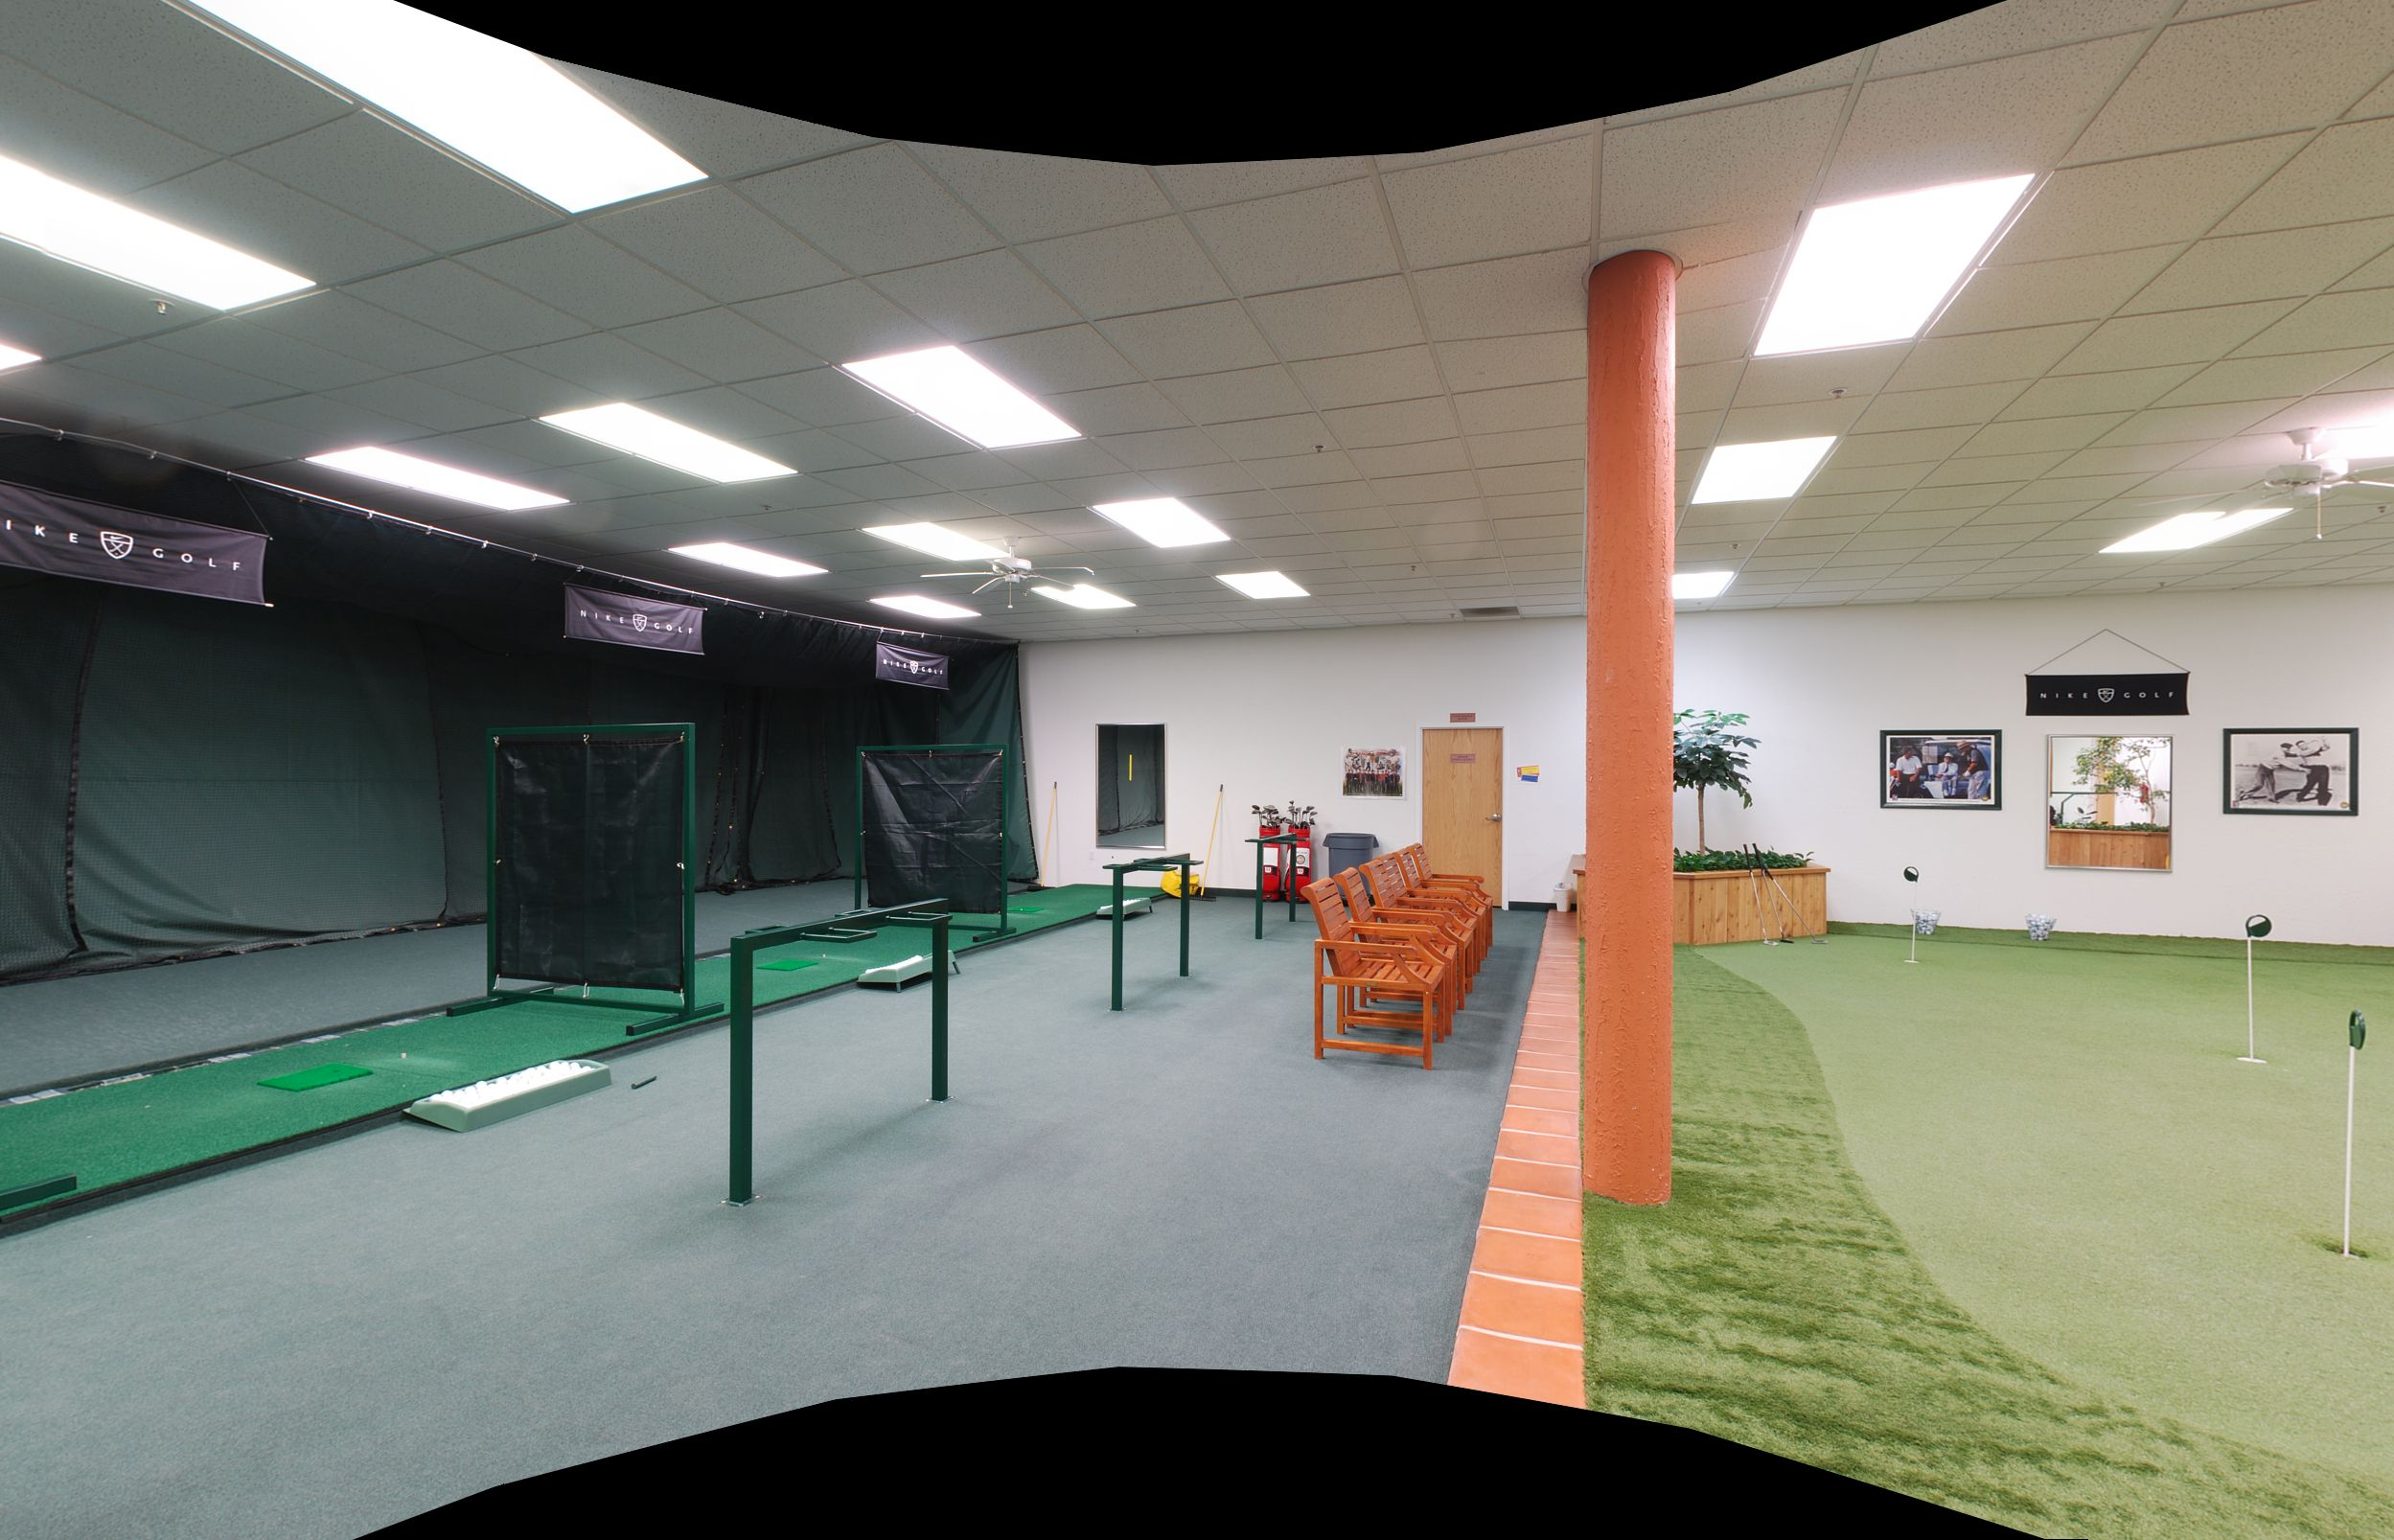 Indoor Golf Driving Range And Putting Green.